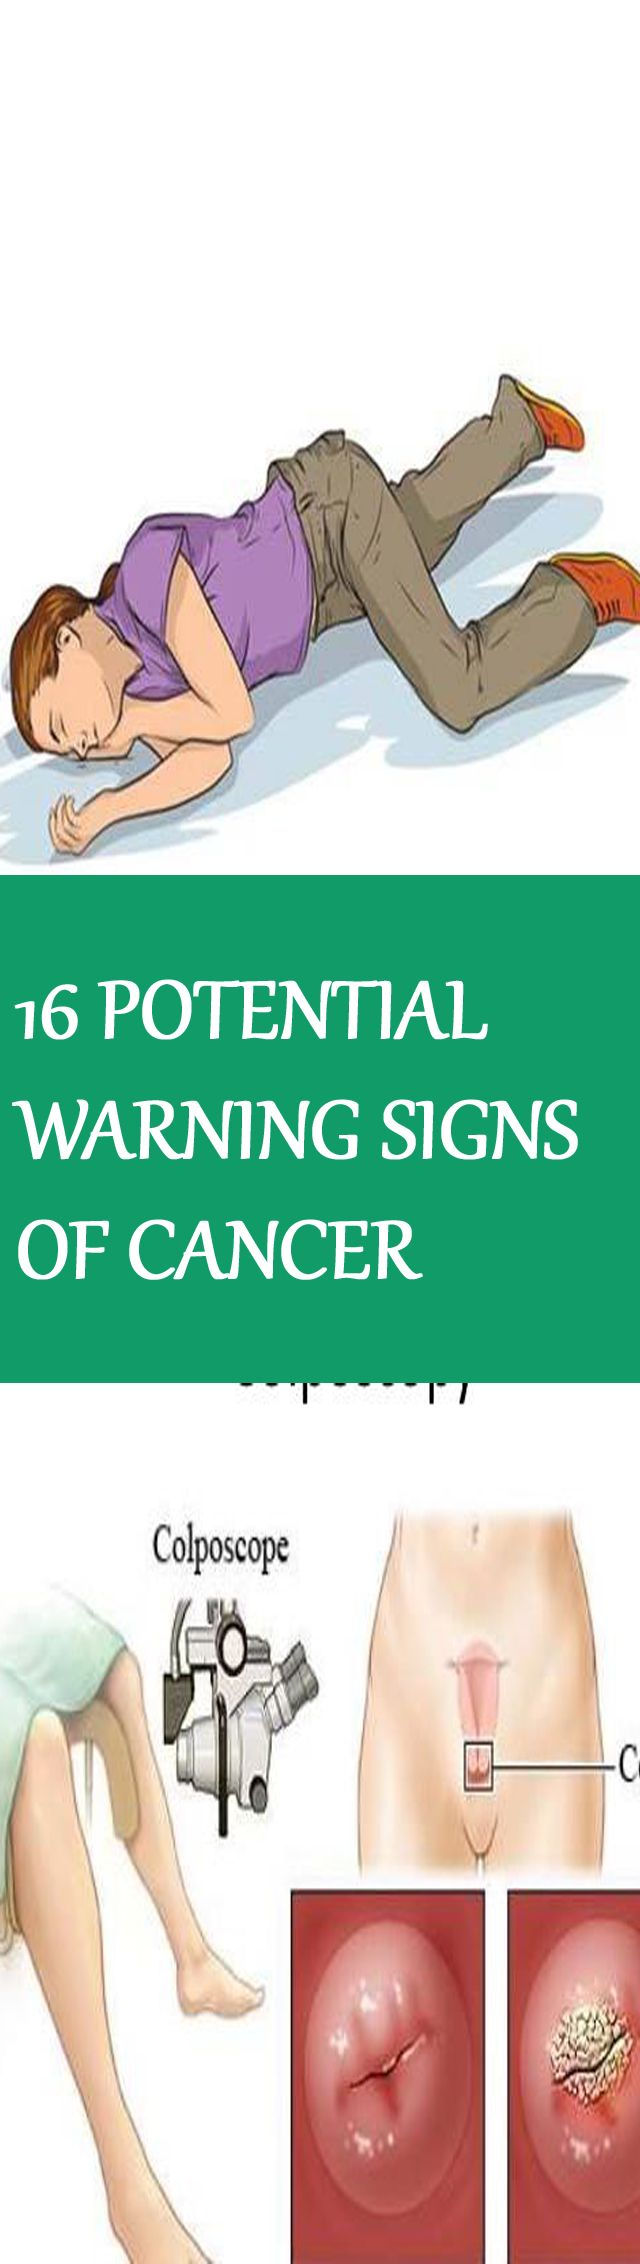 Seven signs of cancer that few people knew 10